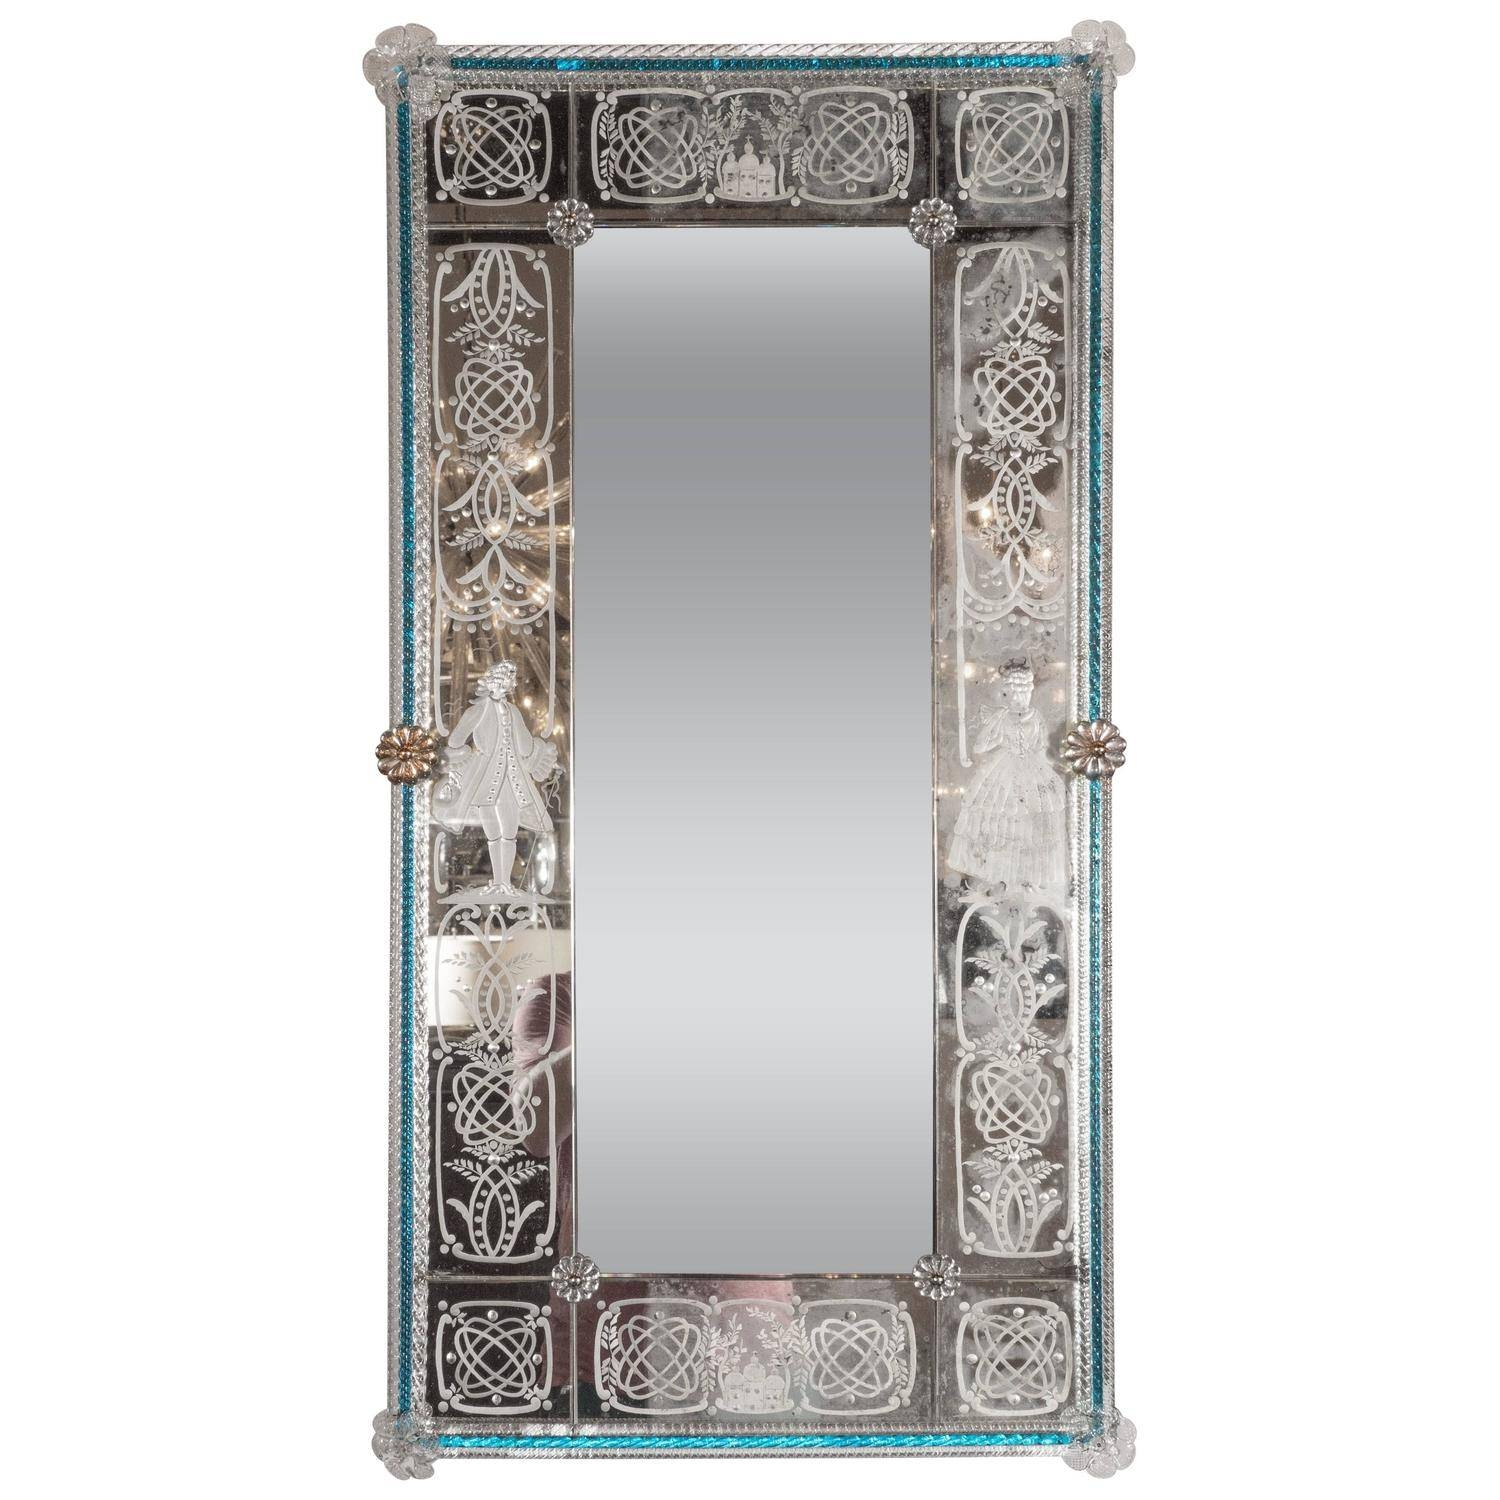 1920S Mirrors - 160 For Sale At 1Stdibs with regard to Large Pewter Mirrors (Image 2 of 25)